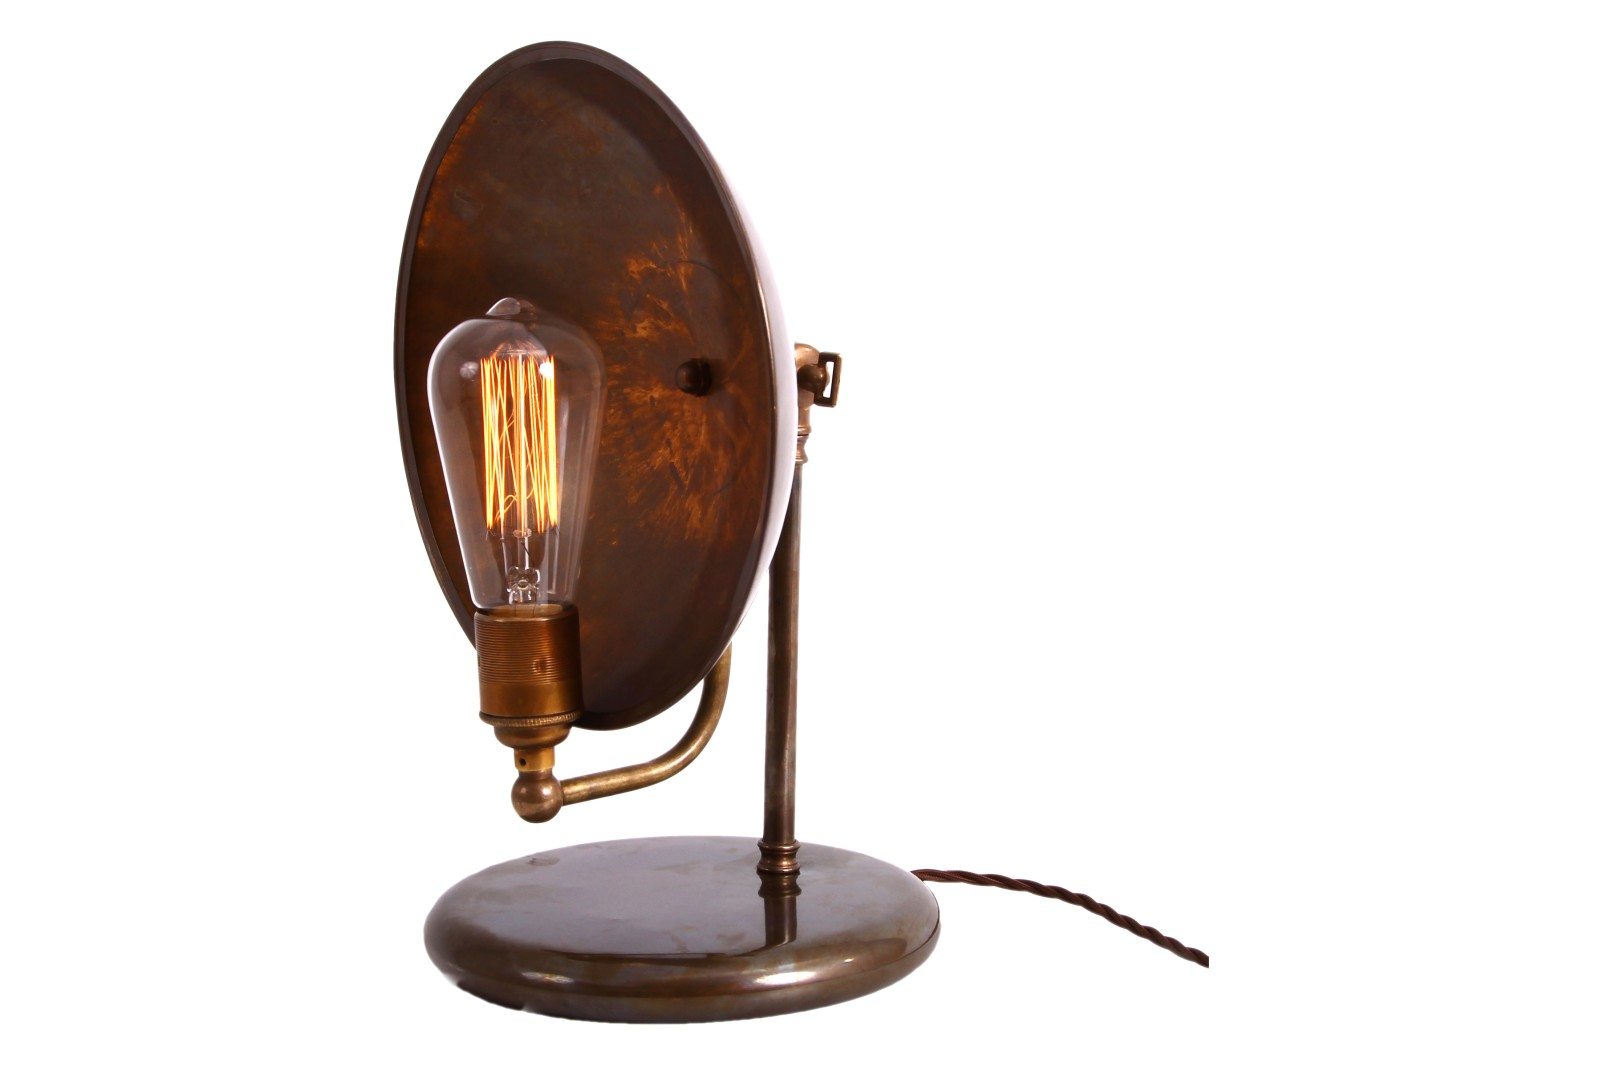 Cullen Table Lamp Antique Brass, UK Plug